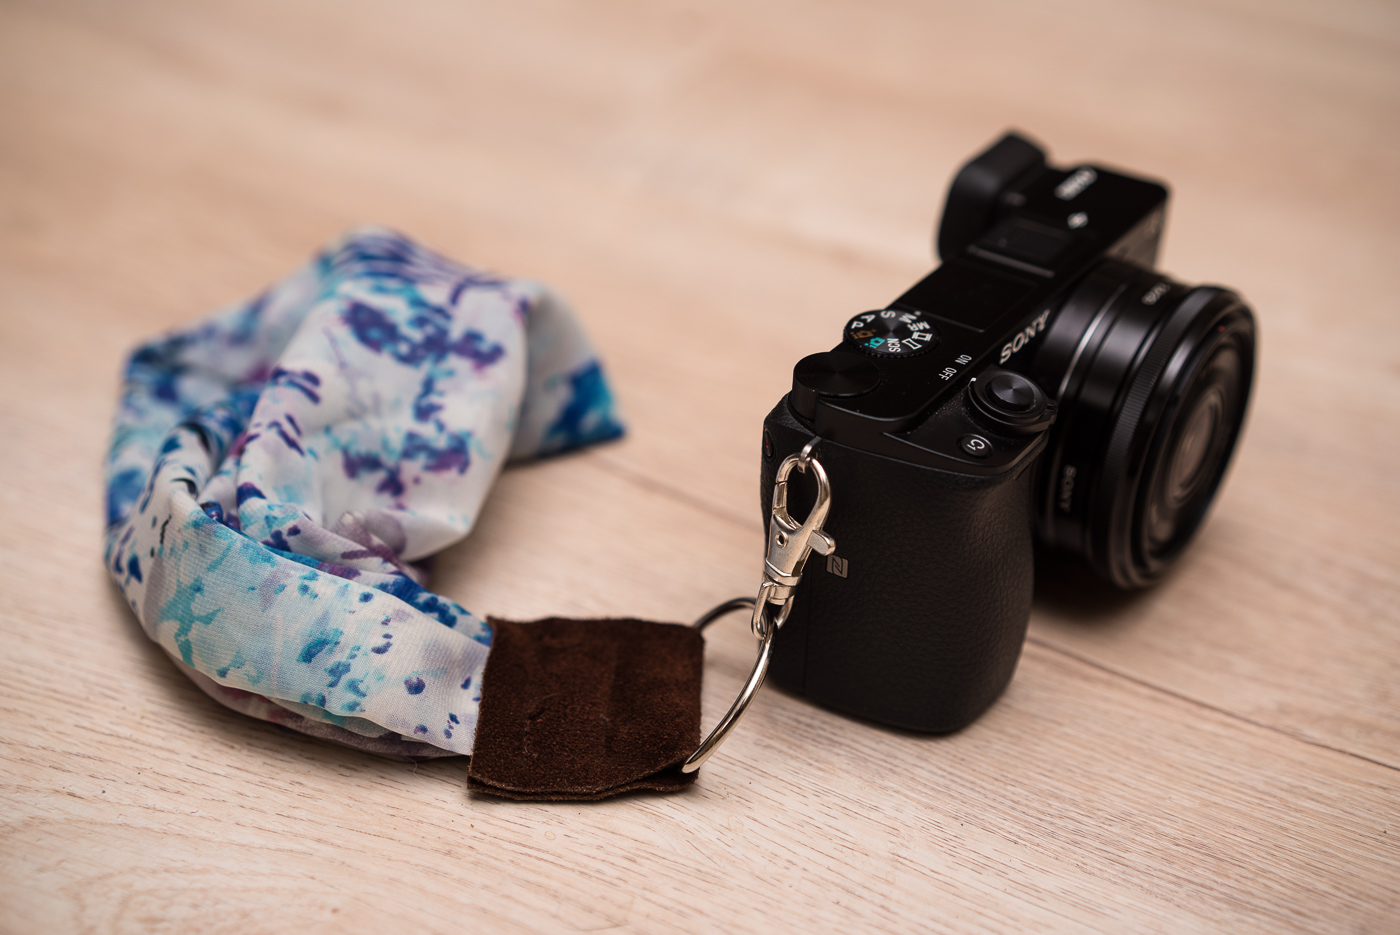 Glam up your camera with a pro quality diy silk scarf strap diy silk scarf camera wrist strap solutioingenieria Images